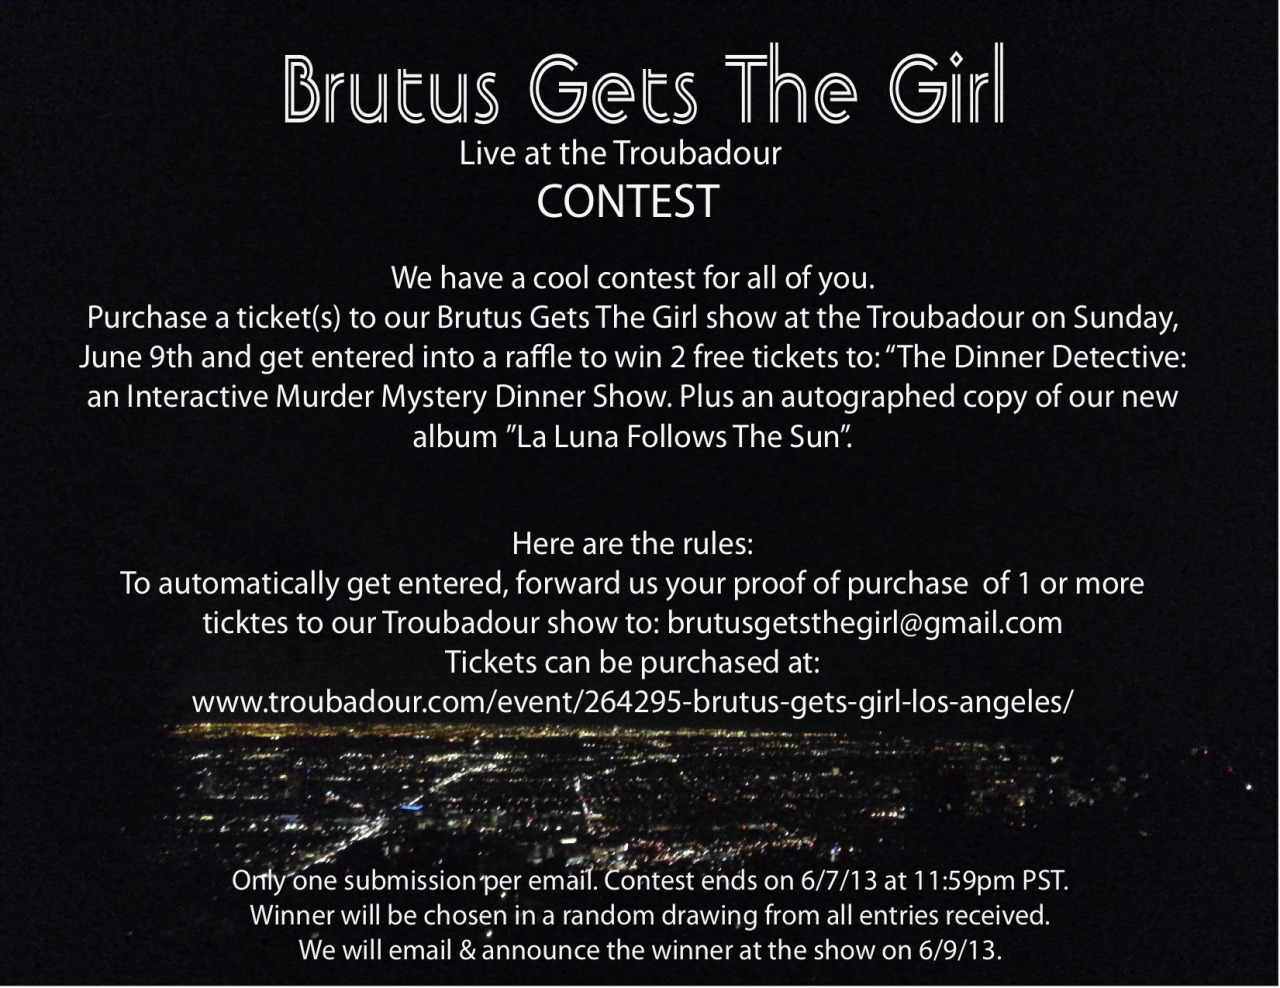 bgtg :     Brutus Gets The Girl - Live @ the Troubadour CONTEST!        Purchase tickets:  http://www.ticketfly.com/event/264295-brutus-gets-girl-los-angeles/          Sponsored by Dinner Detective Ontario: http://www.thedinnerdetective.com/sites/ontario/          www.brutusgetsthegirl.com